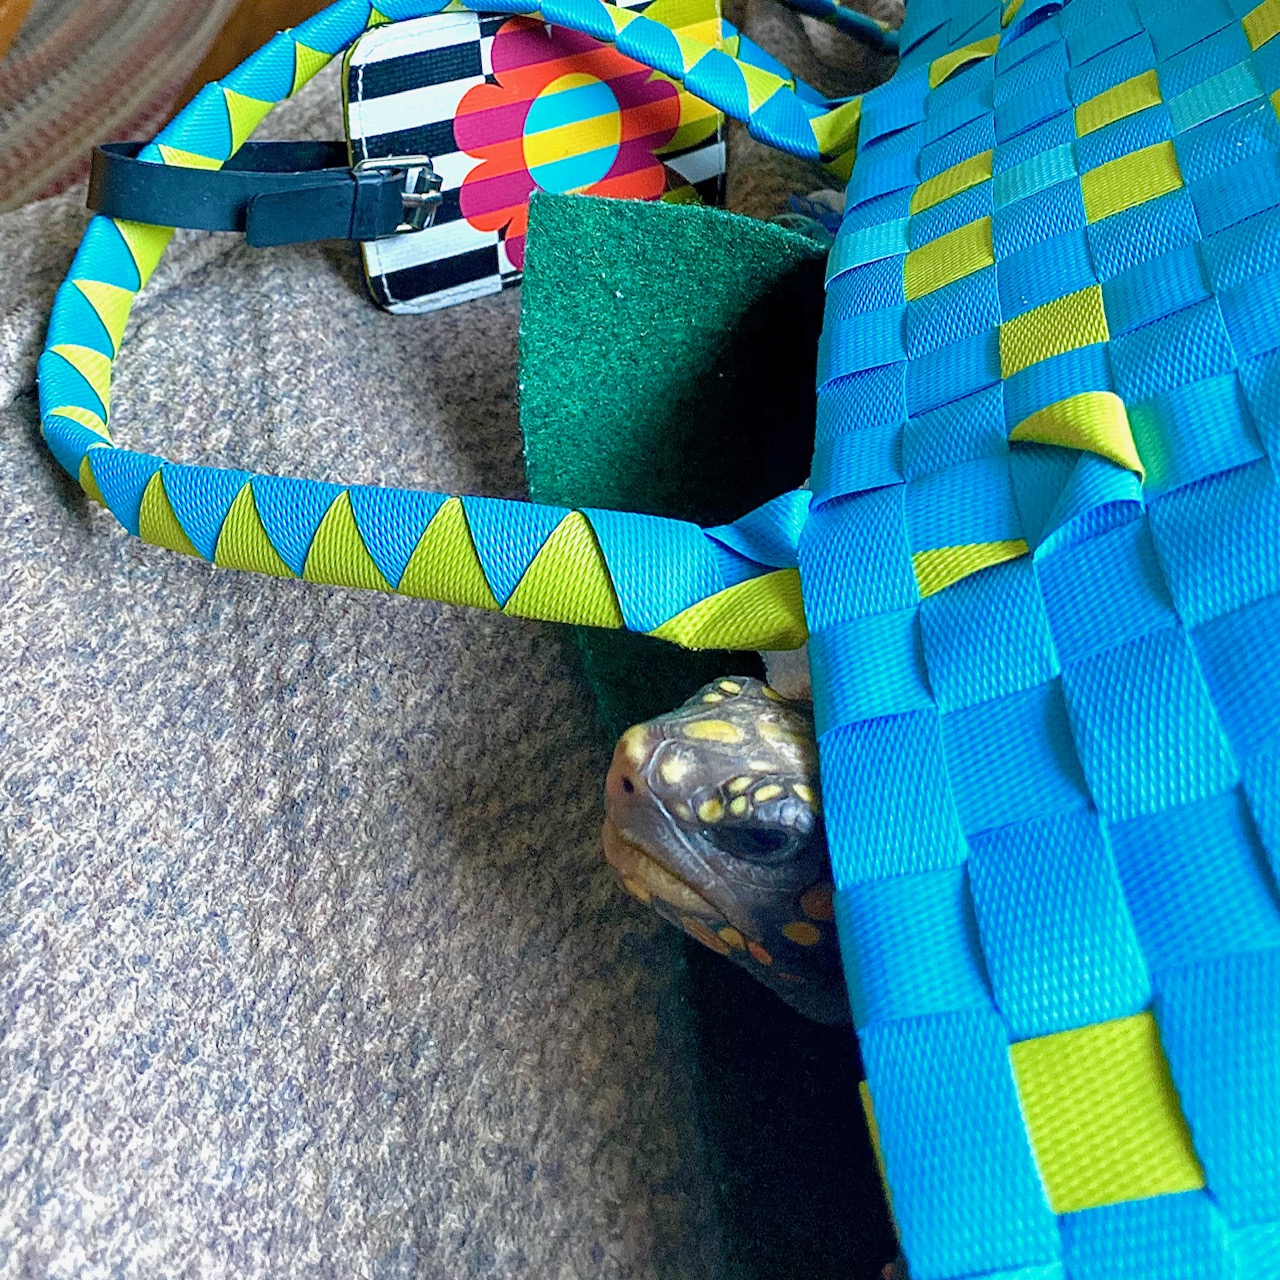 pet tortoise in carrier